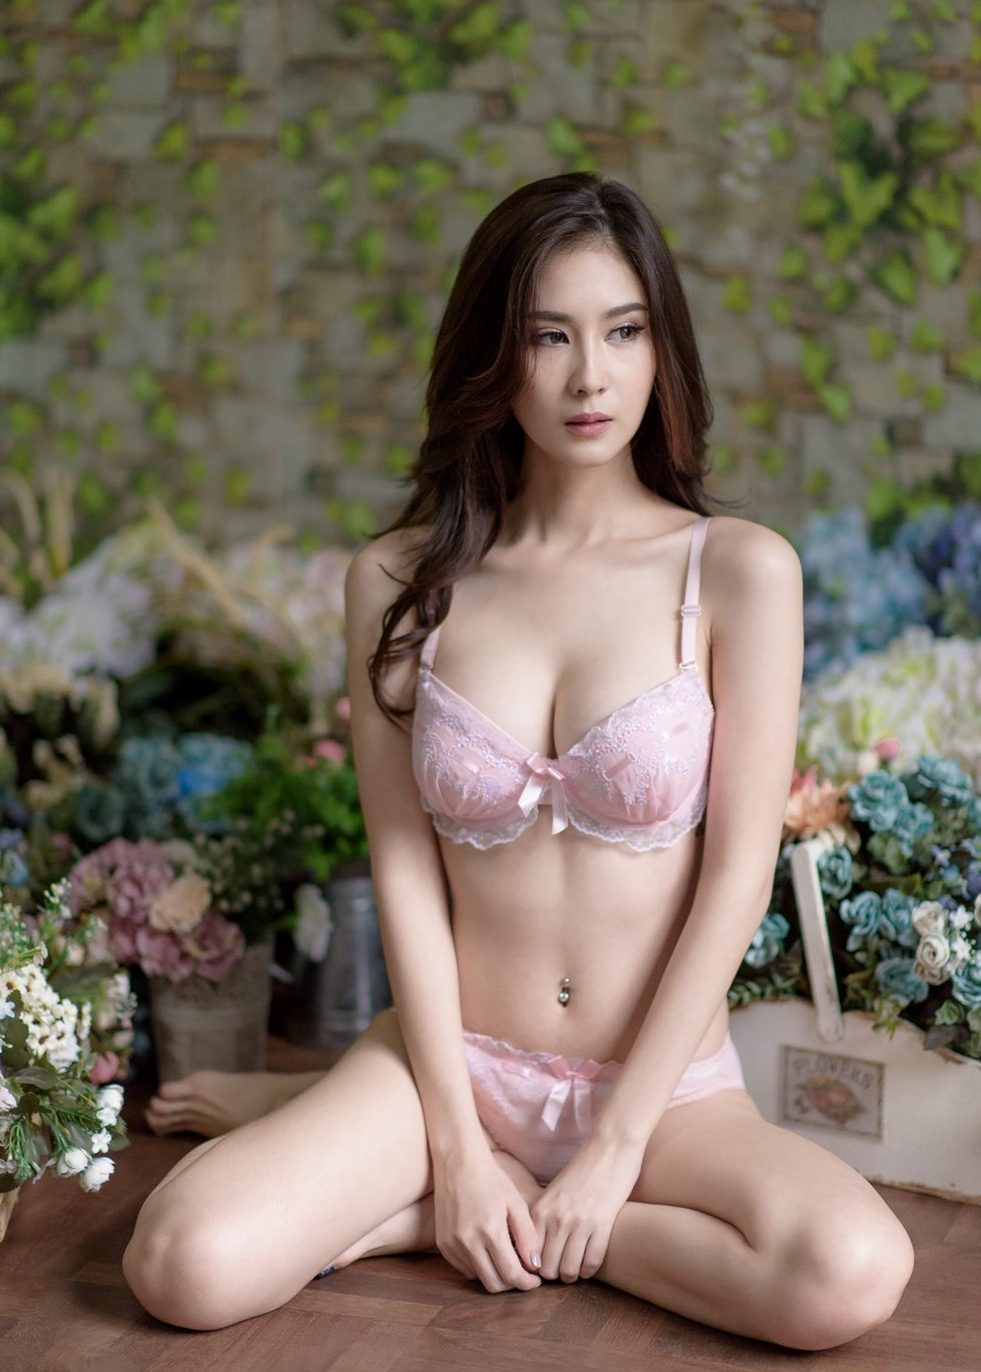 Thanyarat Rodpol hot thai girl very sexy and wild sexy lingerie